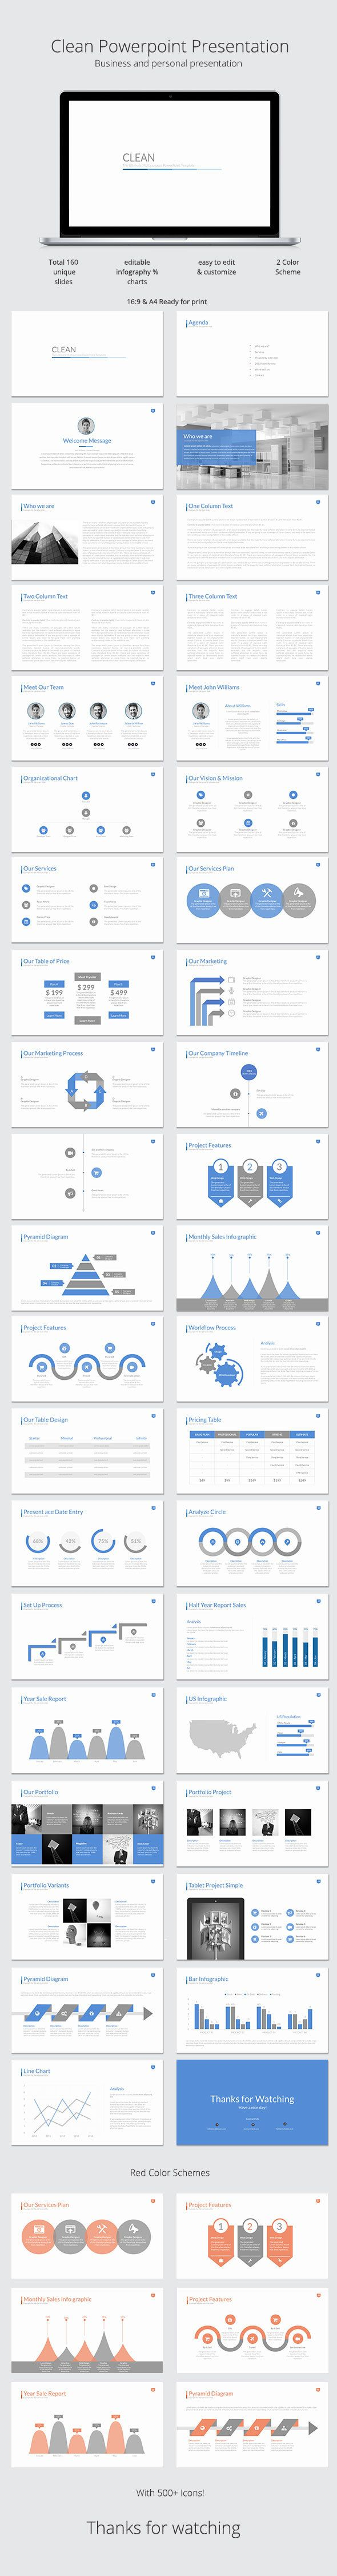 Usdgus  Pretty  Ideas About Presentation On Pinterest  Presentation  With Magnificent Clean Powerpoint Presentation Template Design Slides Download Httpgraphicriver With Cool Social Exchange Theory Powerpoint Also Colourful Powerpoint Templates In Addition Simple Powerpoint Presentation Templates And Powerpoint Tutorial Ppt As Well As Business Powerpoint Presentation Free Download Additionally Nitro Pdf To Powerpoint From Pinterestcom With Usdgus  Magnificent  Ideas About Presentation On Pinterest  Presentation  With Cool Clean Powerpoint Presentation Template Design Slides Download Httpgraphicriver And Pretty Social Exchange Theory Powerpoint Also Colourful Powerpoint Templates In Addition Simple Powerpoint Presentation Templates From Pinterestcom